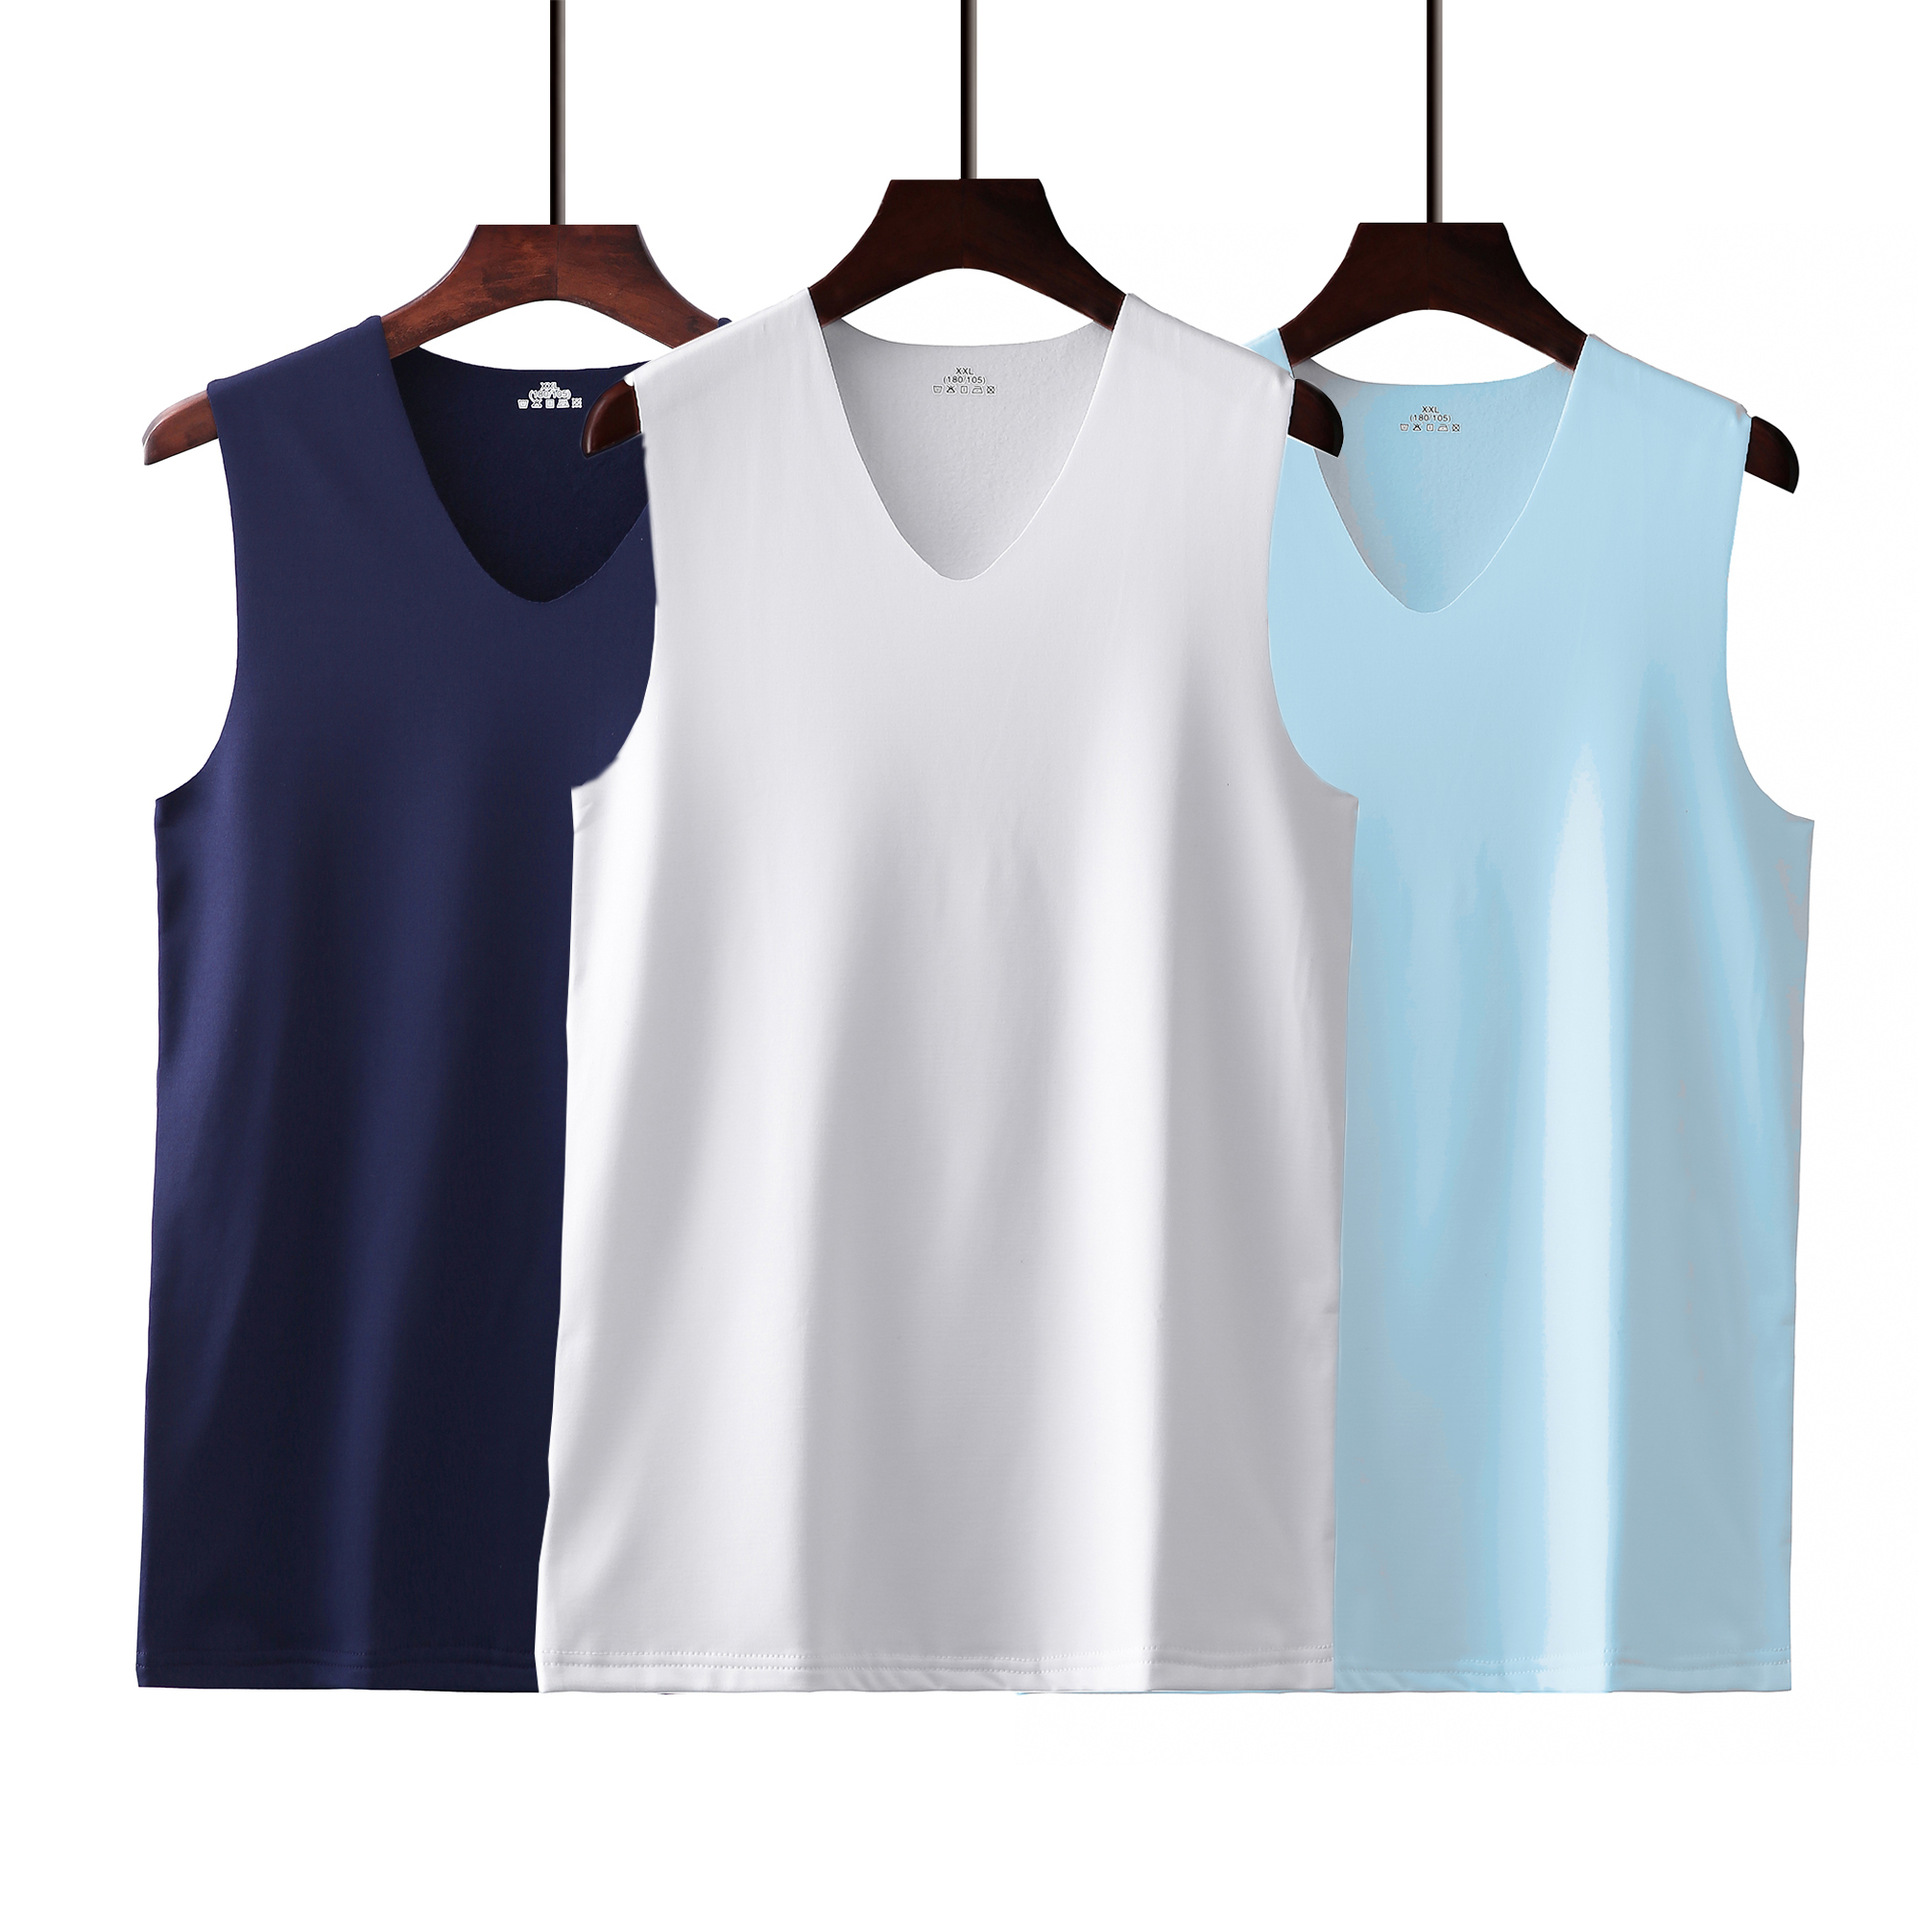 2020 Summer Ice Silk No Trace Men's Vest Thin Section Breathable Wide Shoulder V-neck Sleeveless Shirt Sport Vest M-XXXL